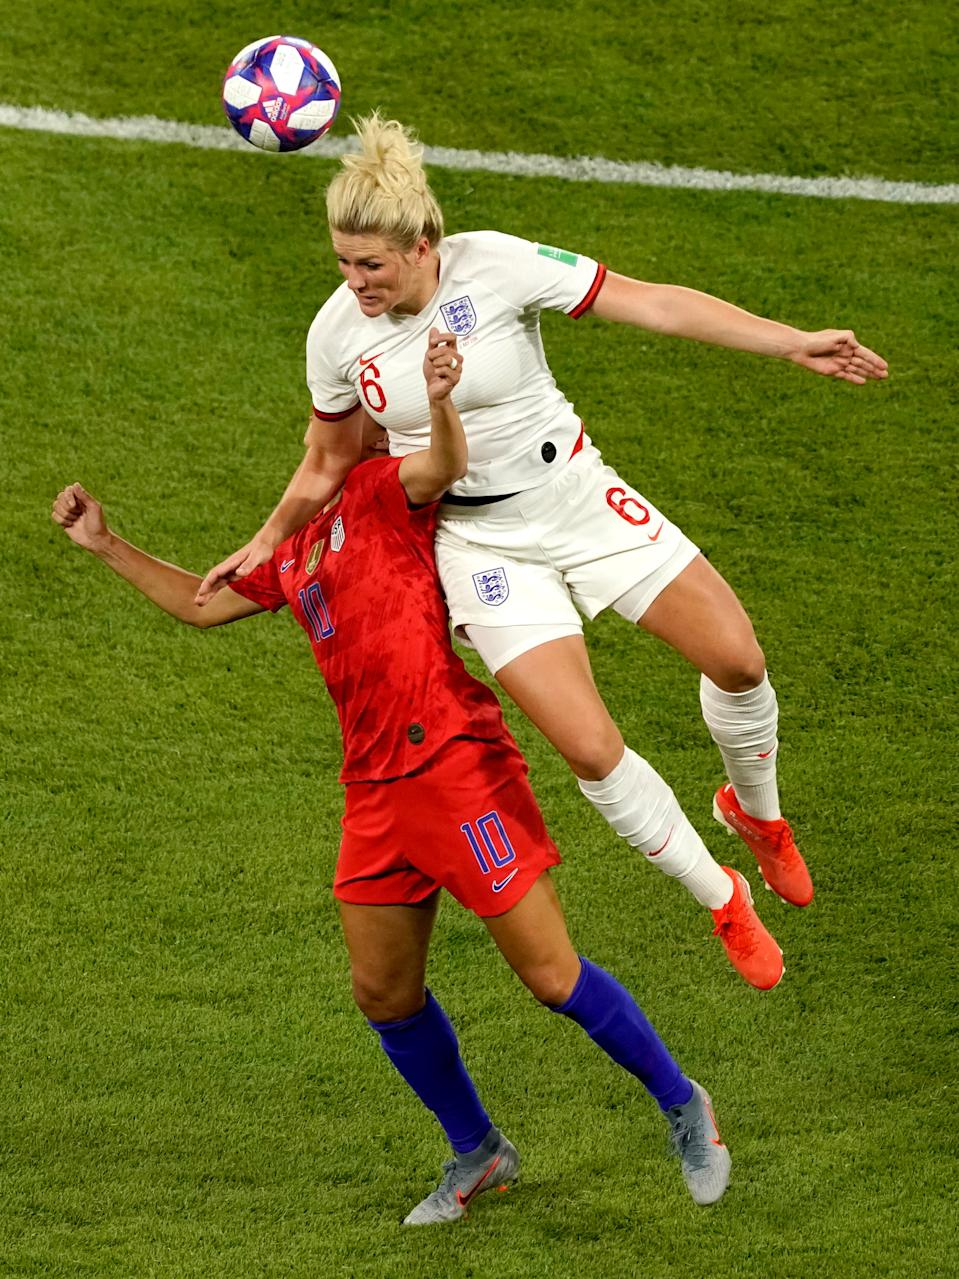 (L-R) Carli Lloyd of USA Women, Millie Bright of England Women during the World Cup Women match between England v USA at the Stade de Lyon on July 2, 2019 in Lyon, France. (Photo by Geert van Erven/Soccrates/Getty Images)